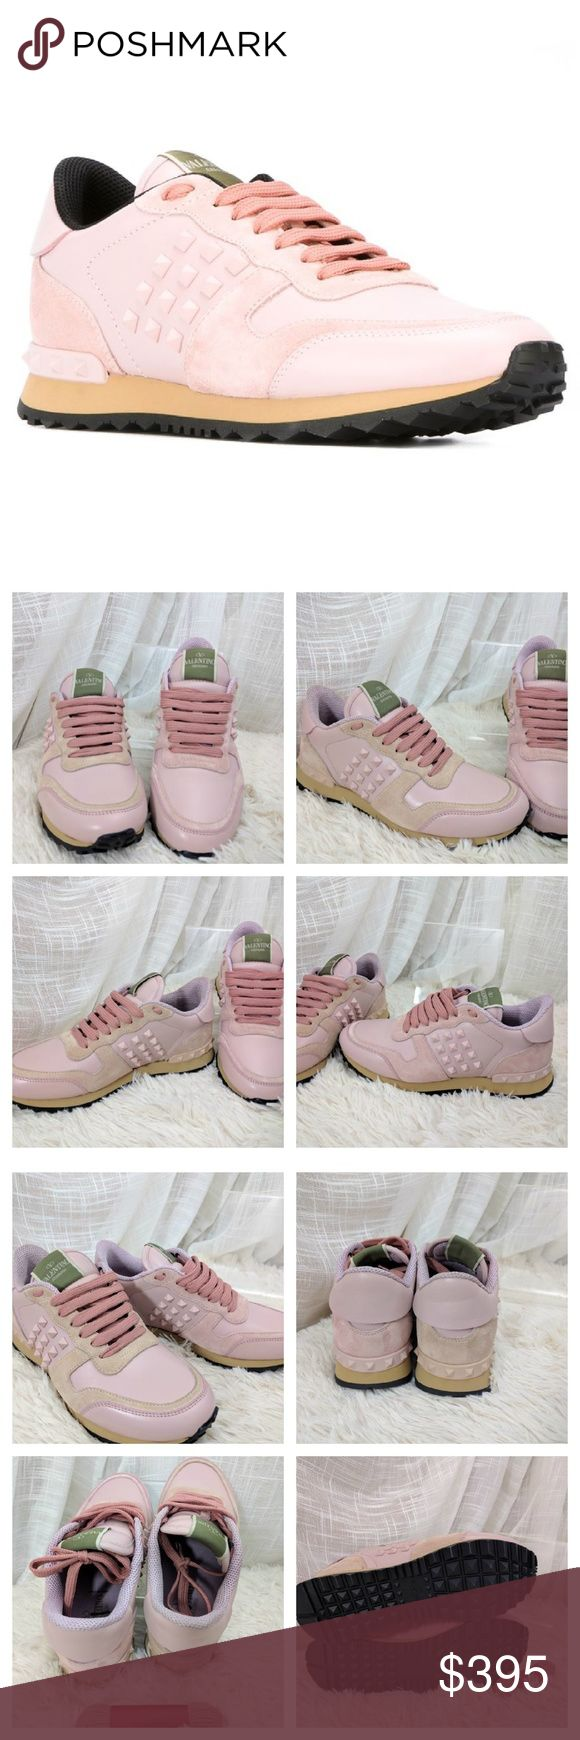 Valentino Garavani Rockstud Sneakers defect! Brand new Valentino Garavani sneakers in pastel pink.  Defect is the suede on one of the shoes is a different hue than the other (closer to tan) see the photos for detail or ask any questions before purchasing please.  These are guaranteed authentic they were received from a Canadian luxury retailer. Valentino Garavani Shoes Sneakers